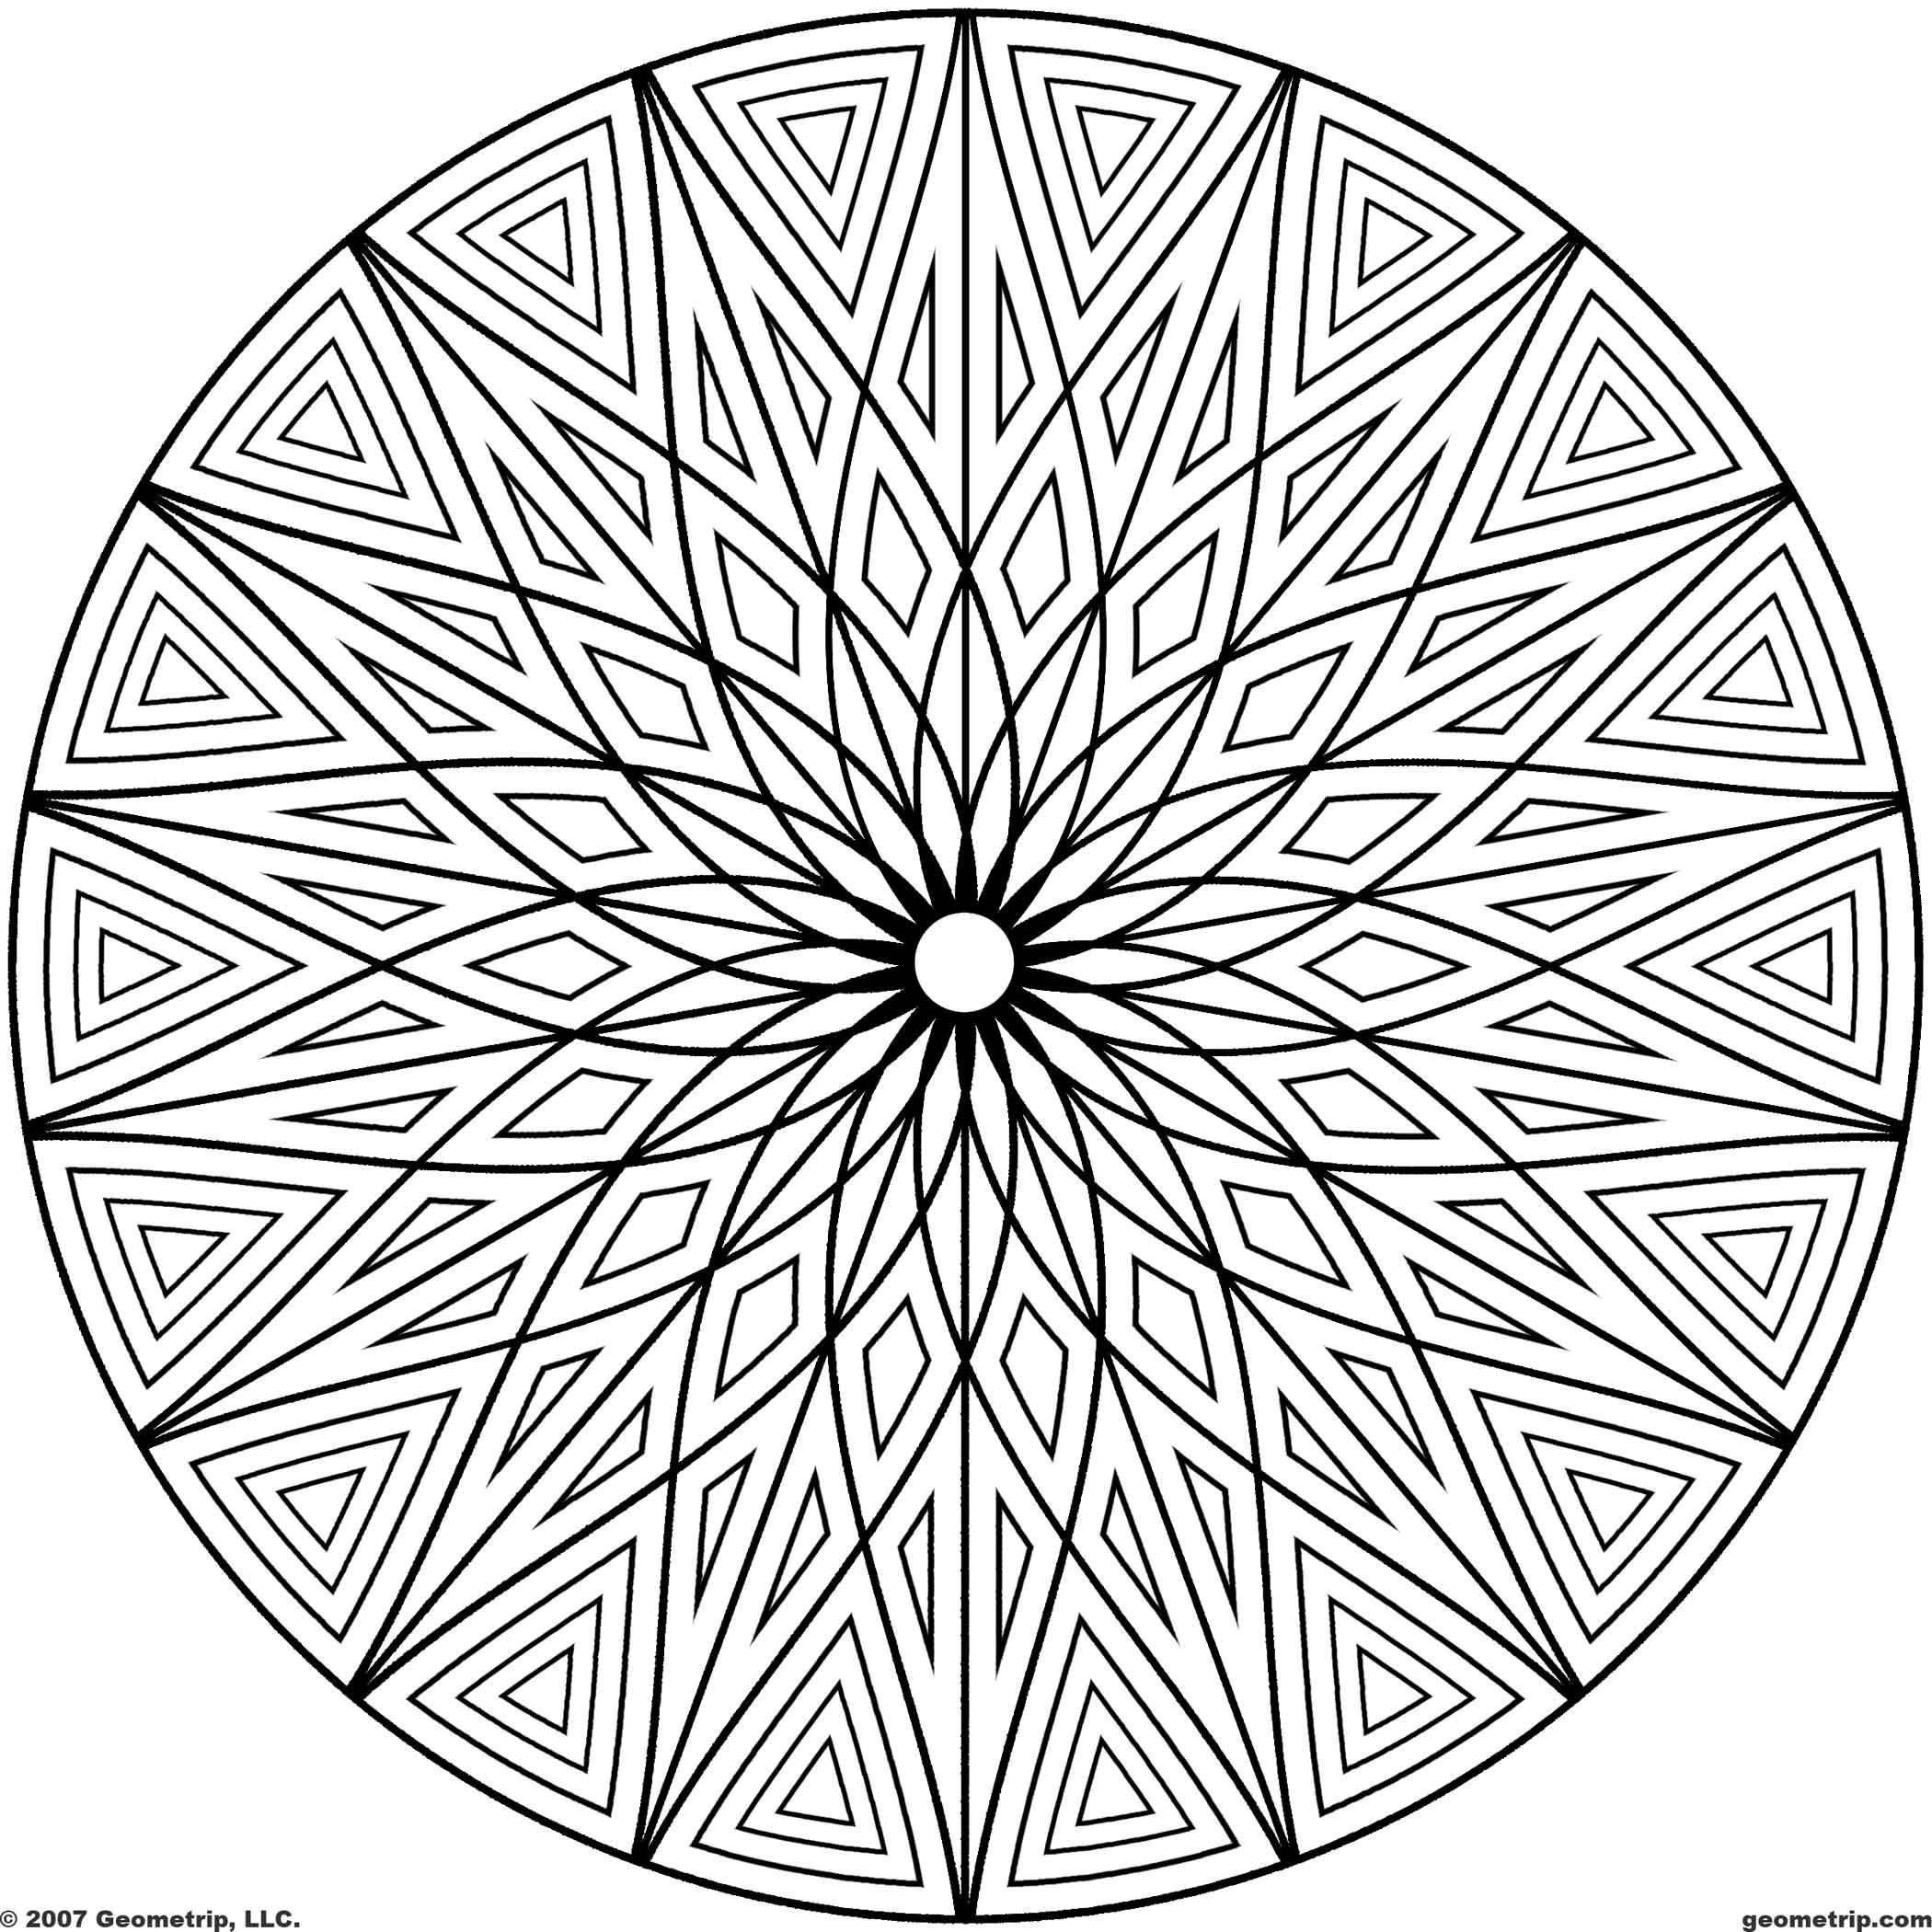 coloring pictures hard 6 best images of difficult coloring pages free printable hard pictures coloring